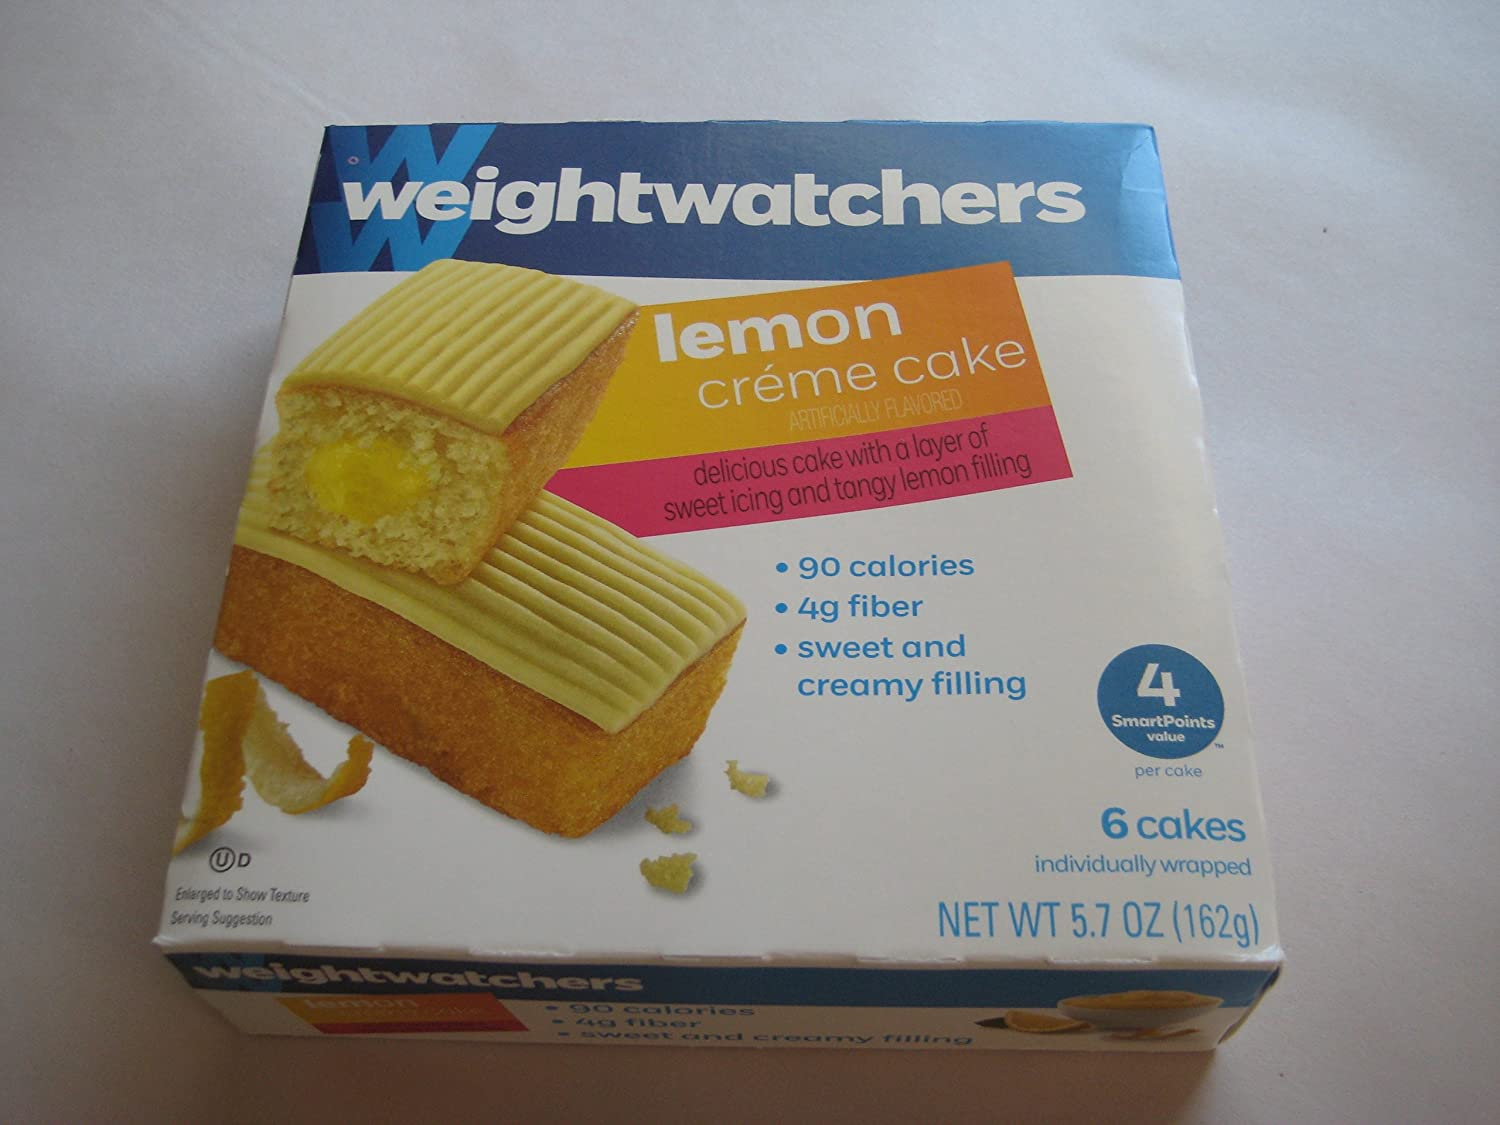 Surprising Amazon Com Weight Watchers Lemon Creme Cake 3 Pack Of 6 Cakes Funny Birthday Cards Online Overcheapnameinfo